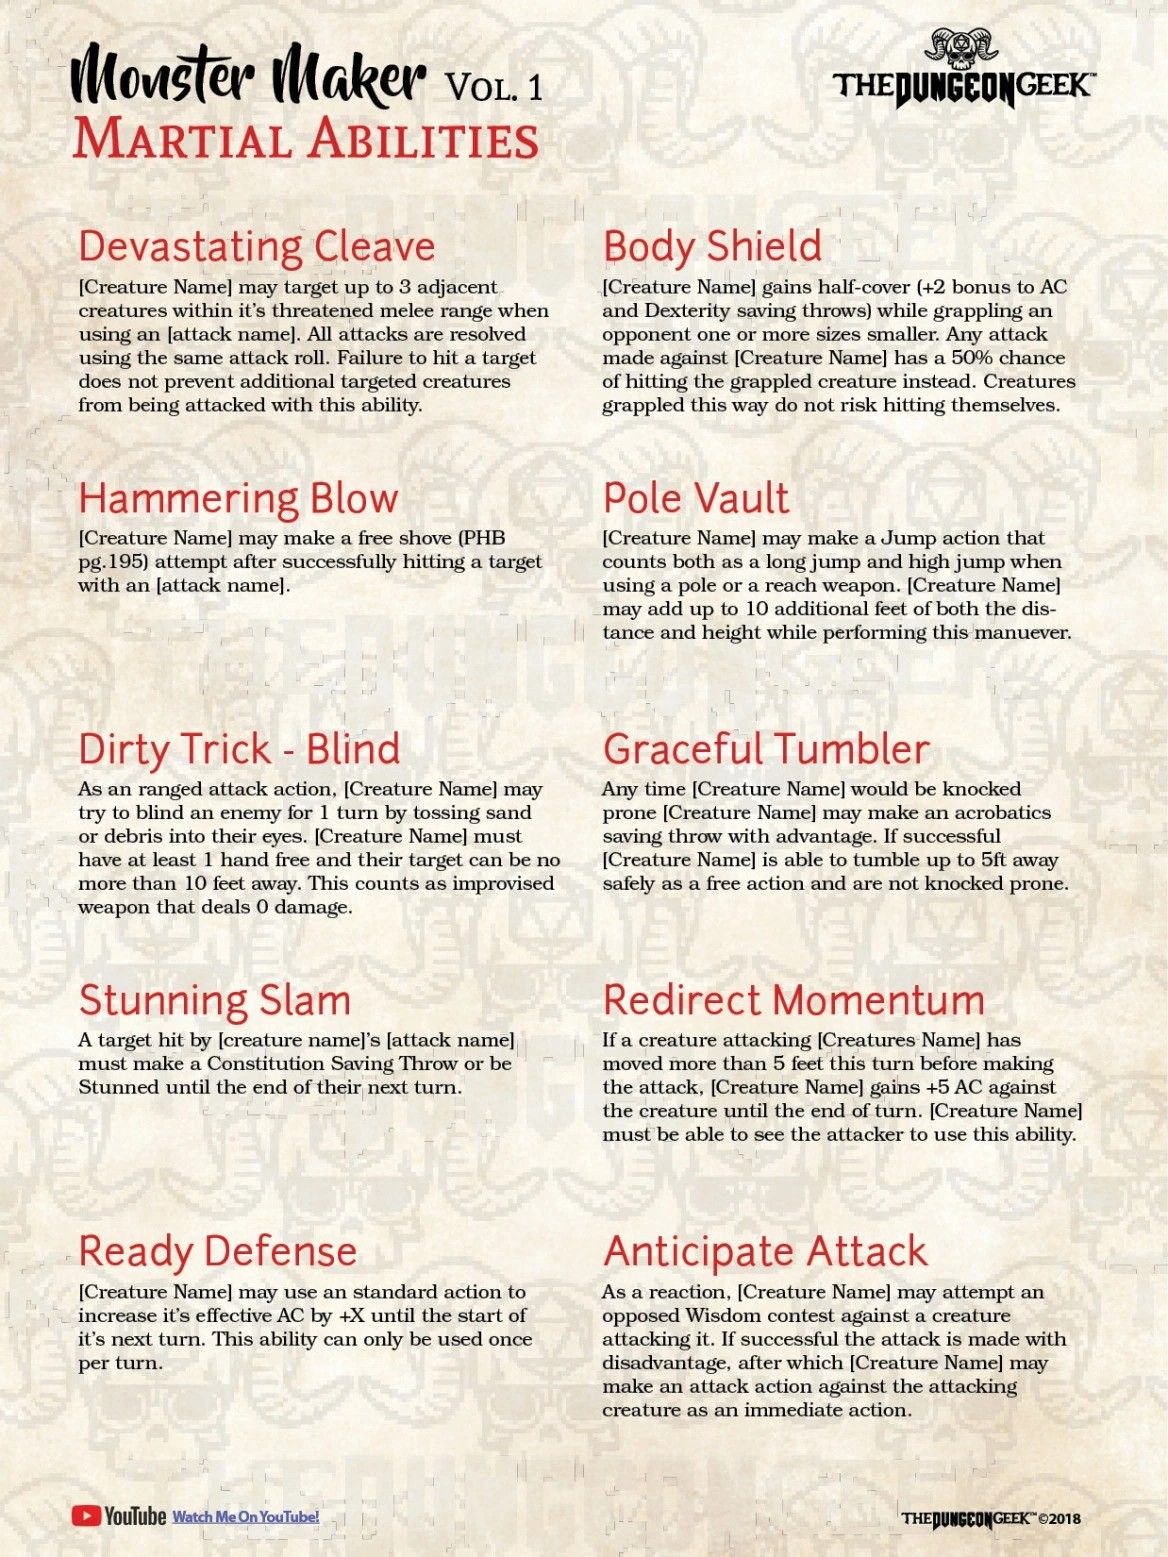 D&D 5E homebrew monster special abilities dm tips and tricks rules